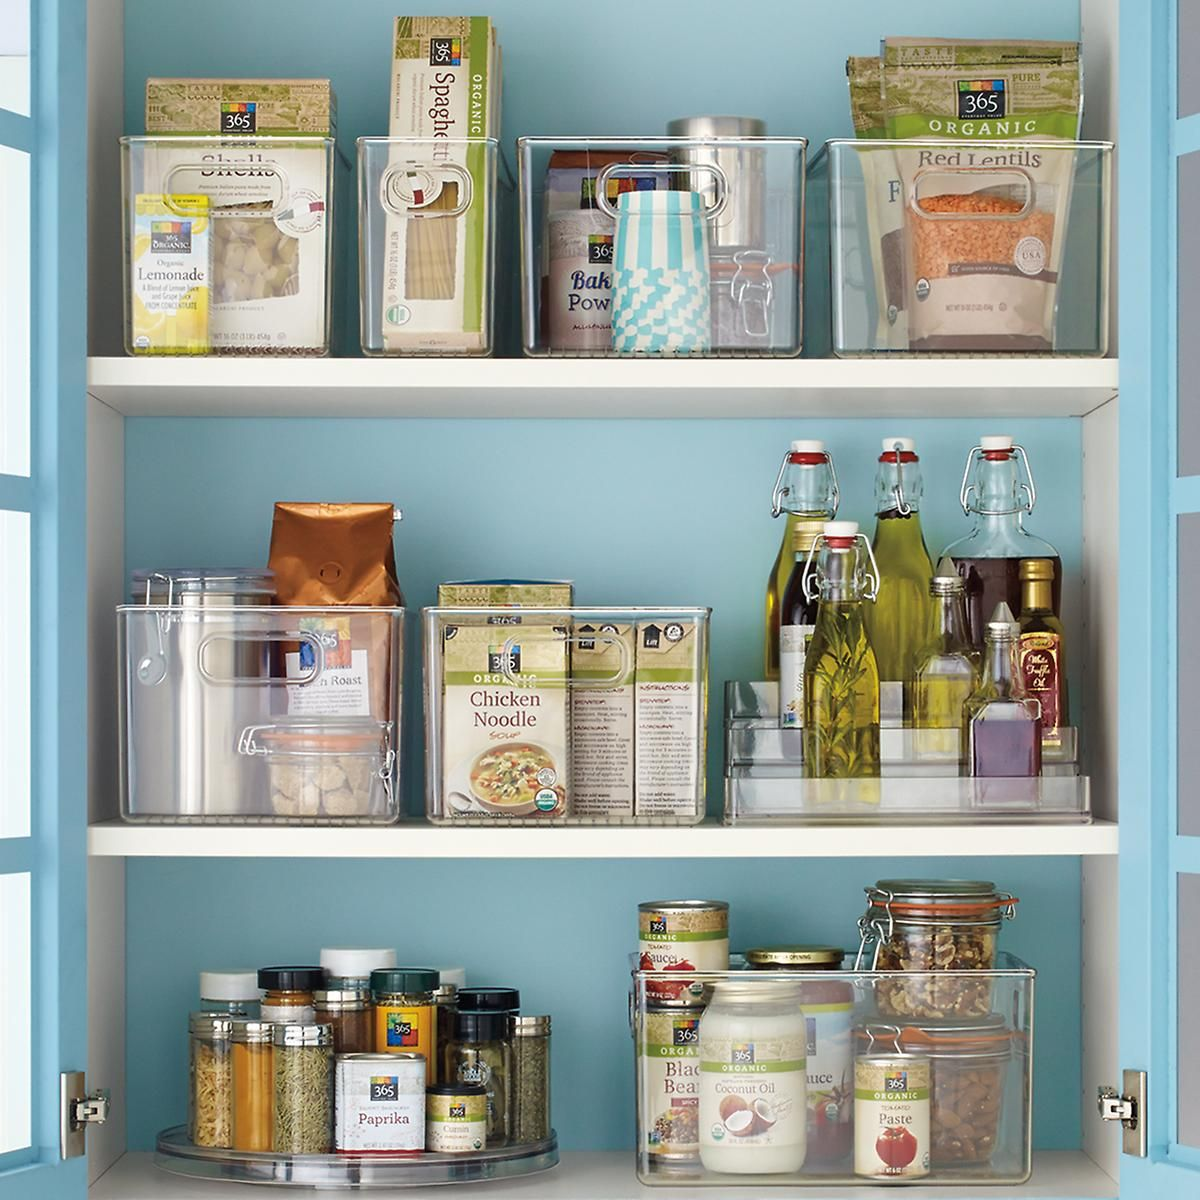 Linus Pantry Binz | Pantry, Container store and Organizing